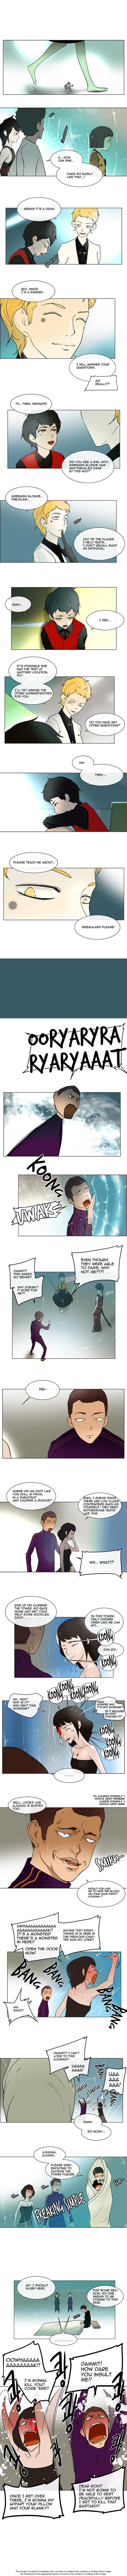 Tower of God 10 Page 2